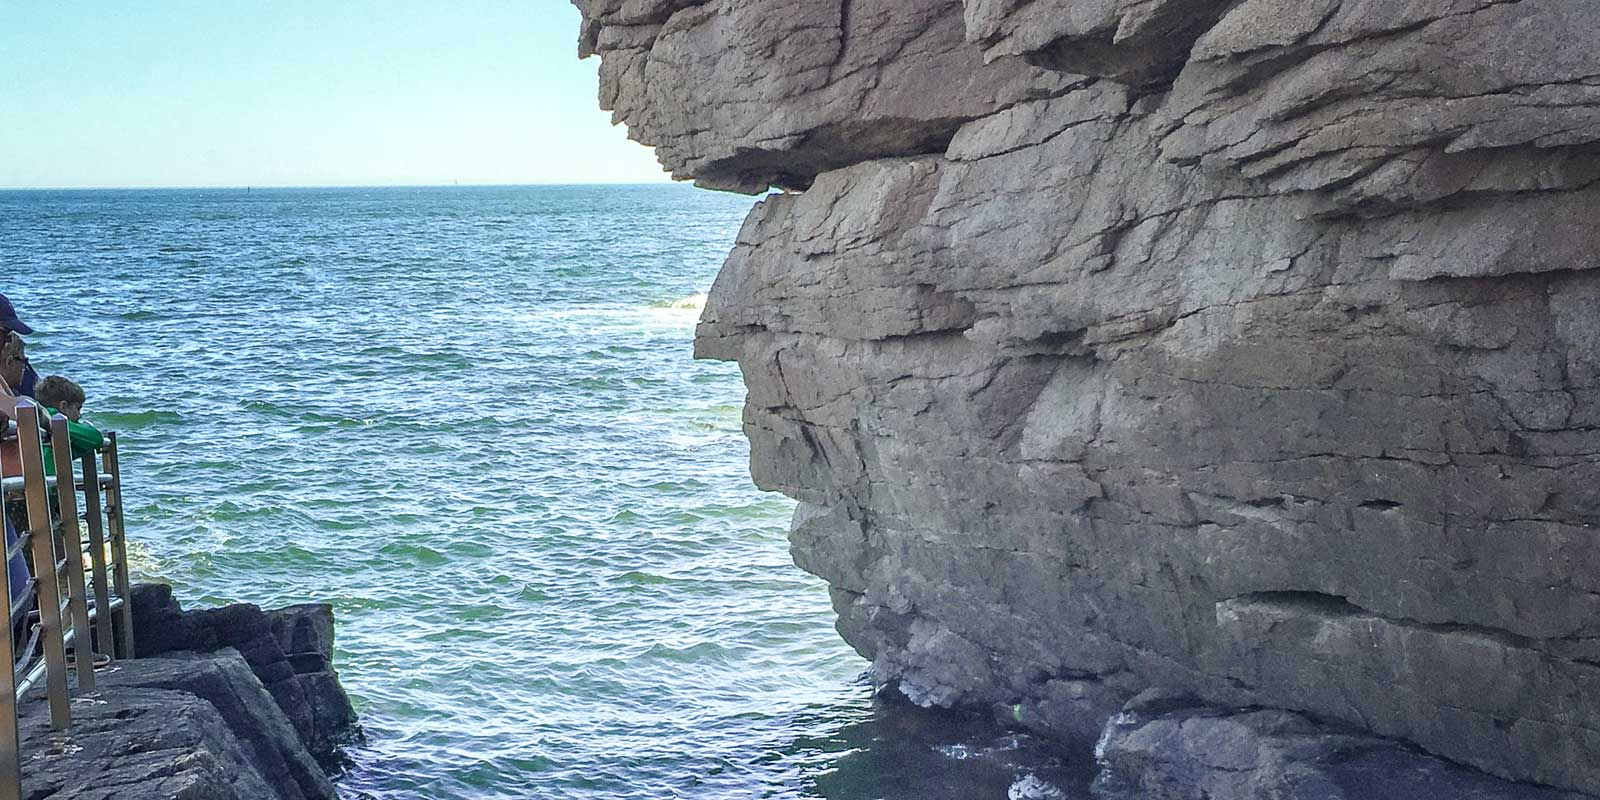 Close up shot from behind Thunder Hole cove in Acadia National Park